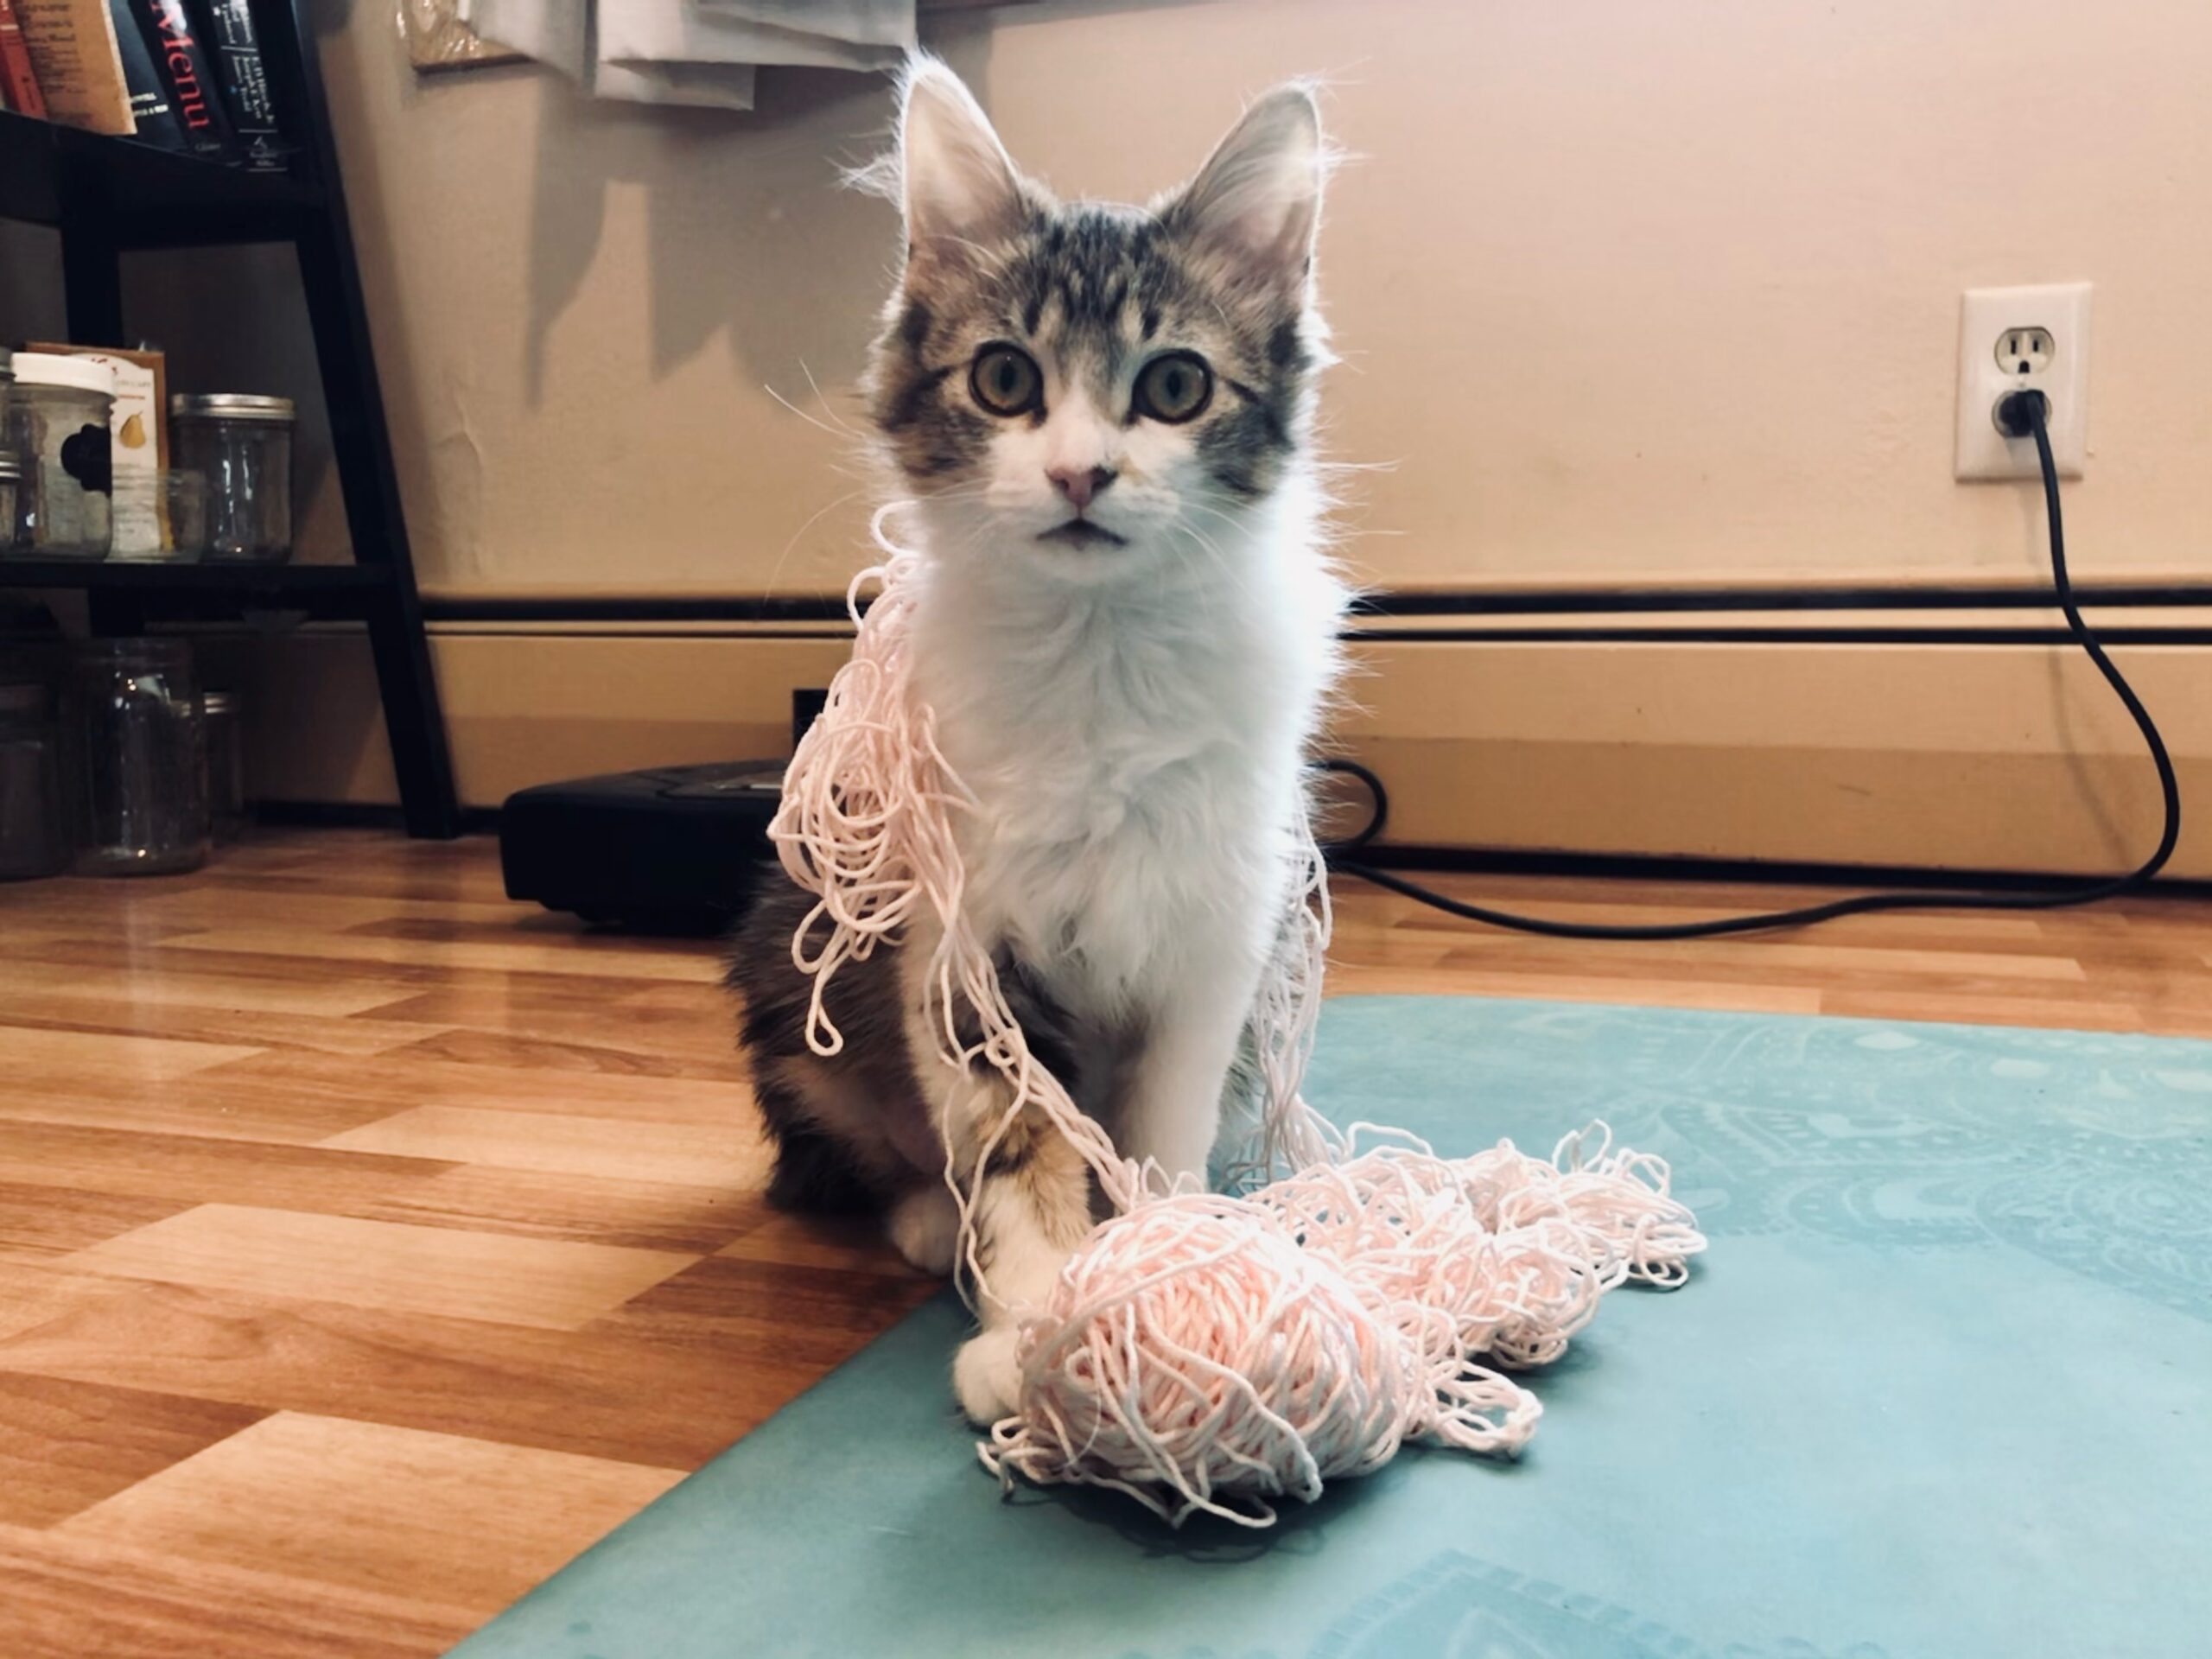 kitten on yoga mat covered in yarn that used to be a ball.